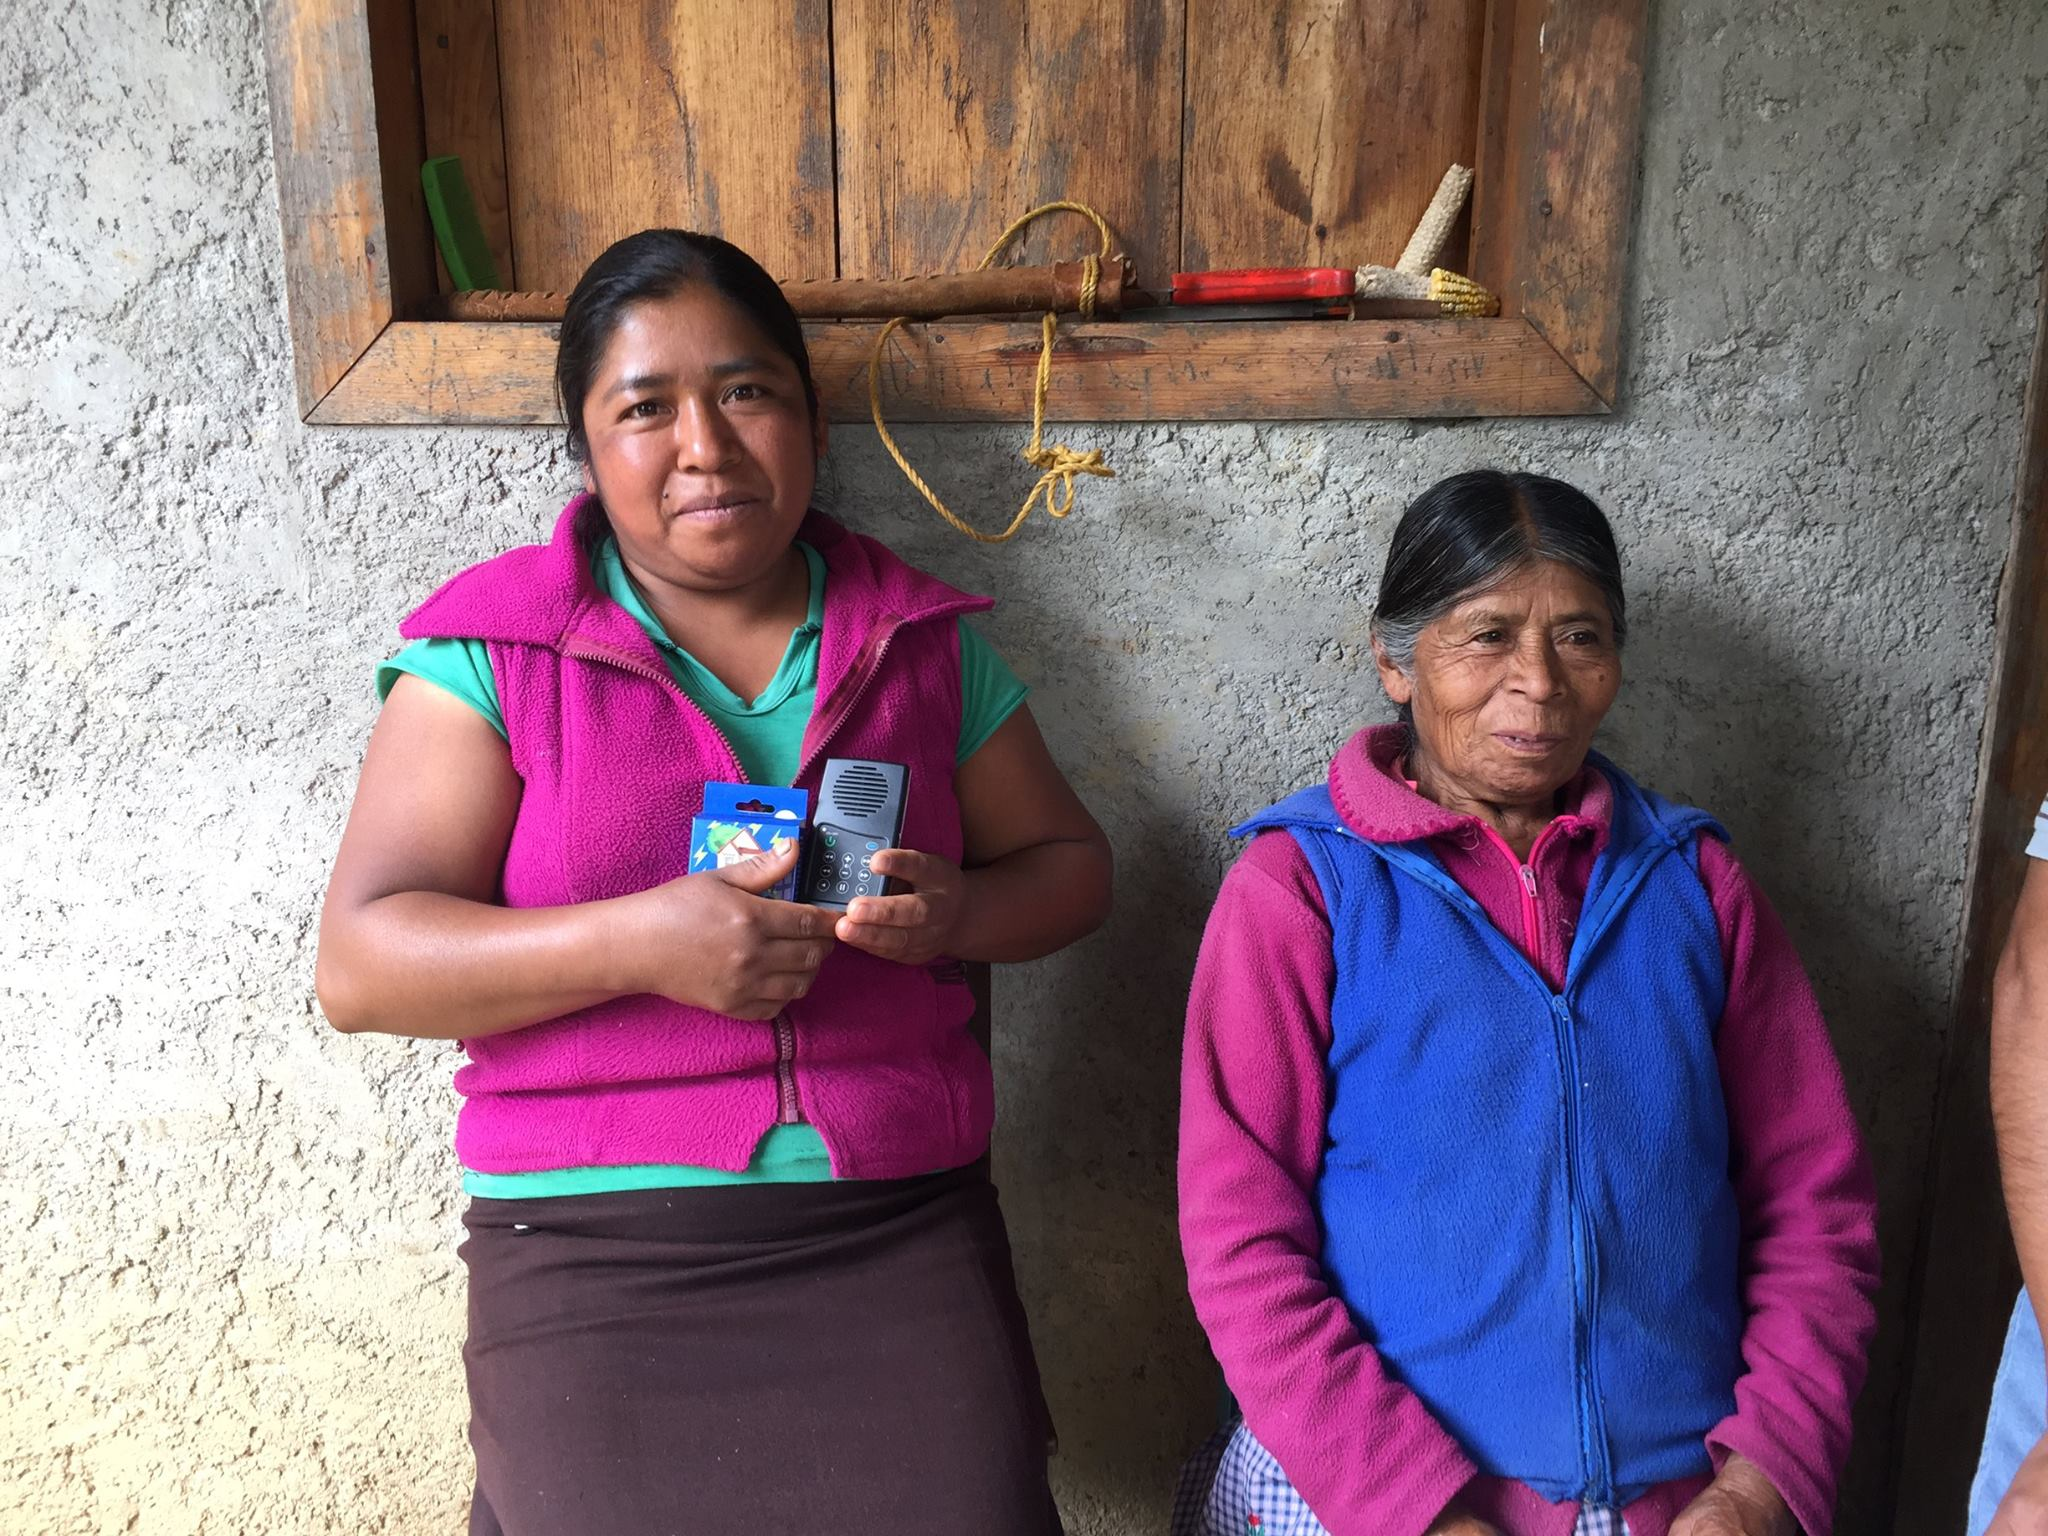 A taxi driver, a suffering woman, a town in witchcraft, and the power of audio Bibles